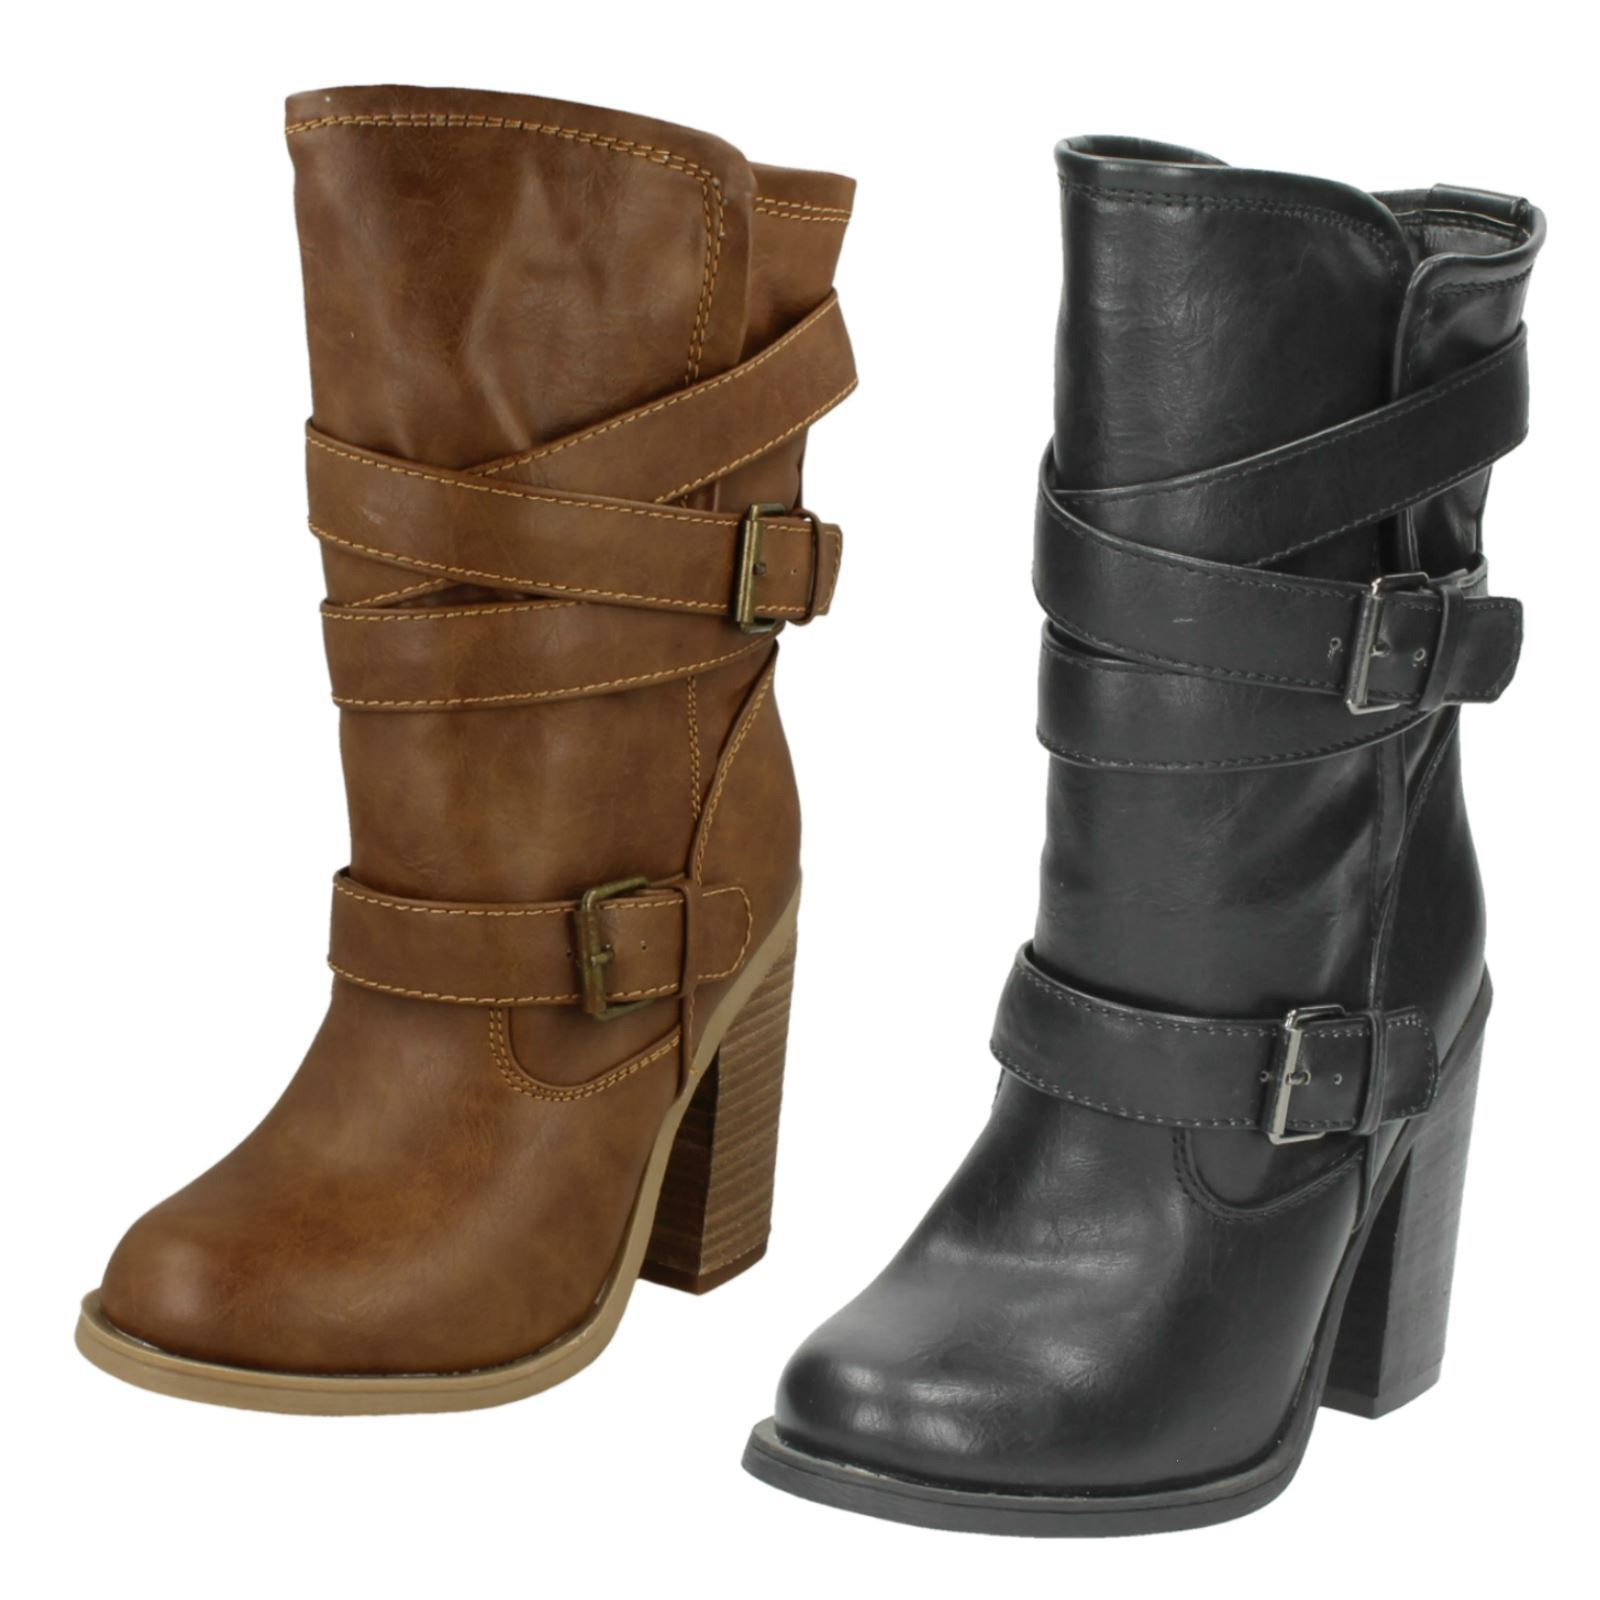 Ladies Spot On 'Mid Calf Length Boots'